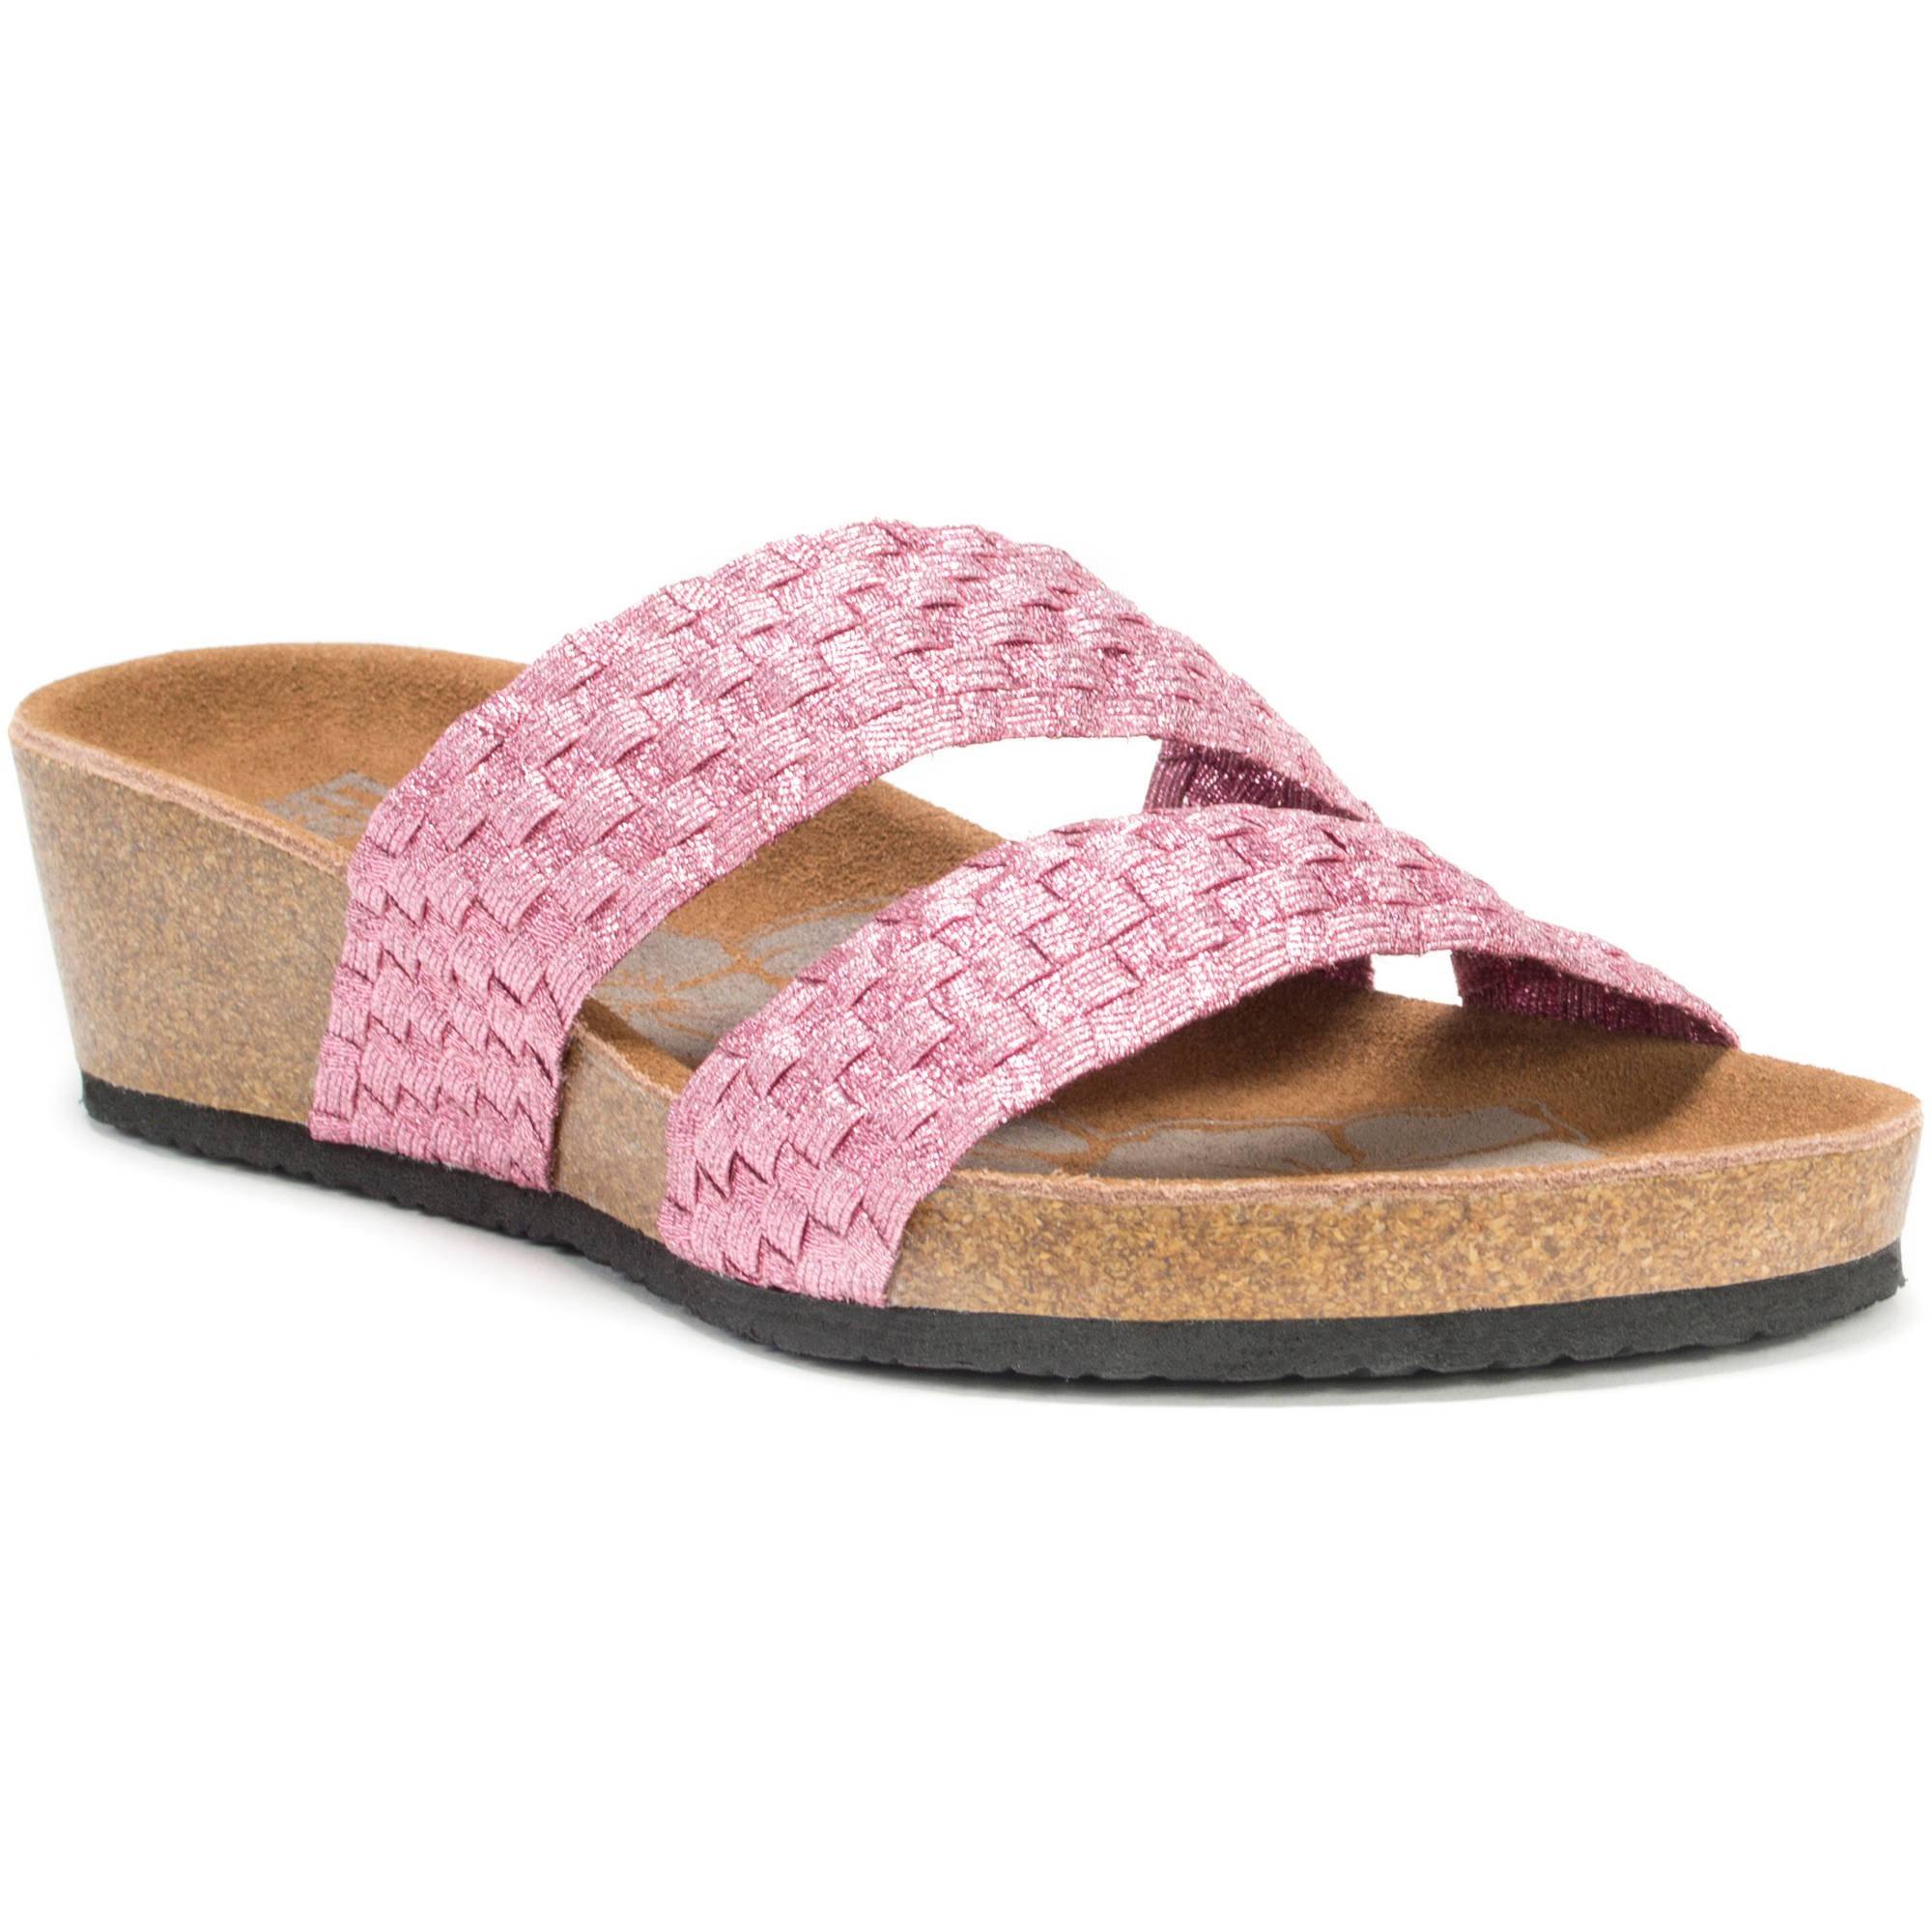 MUK LUKS Women's Heather Wedge Sandals